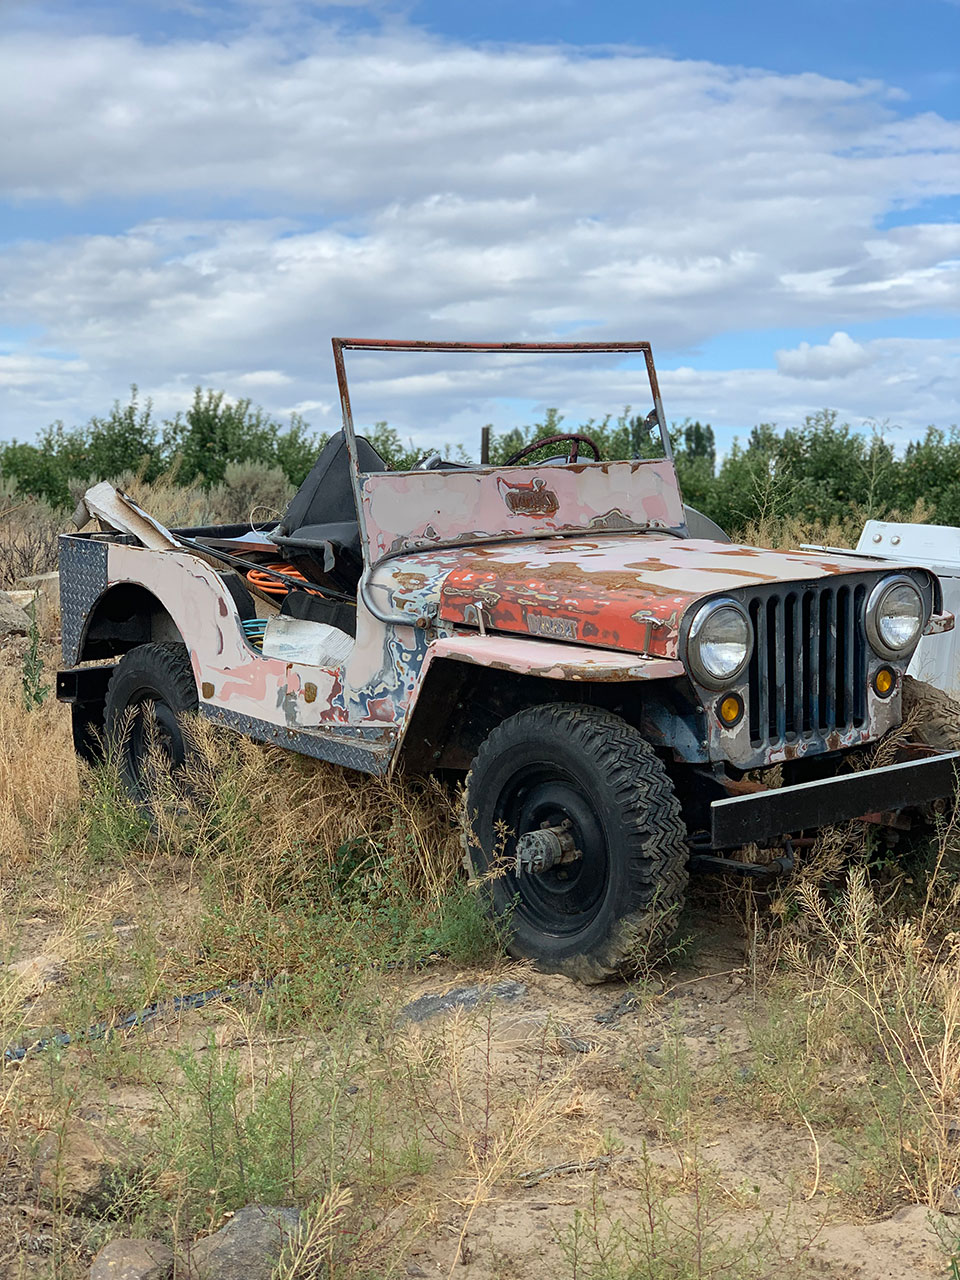 Willys Jeeps For Sale >> 1940 Jeep Willys Project For Sale in Cowiche, WA